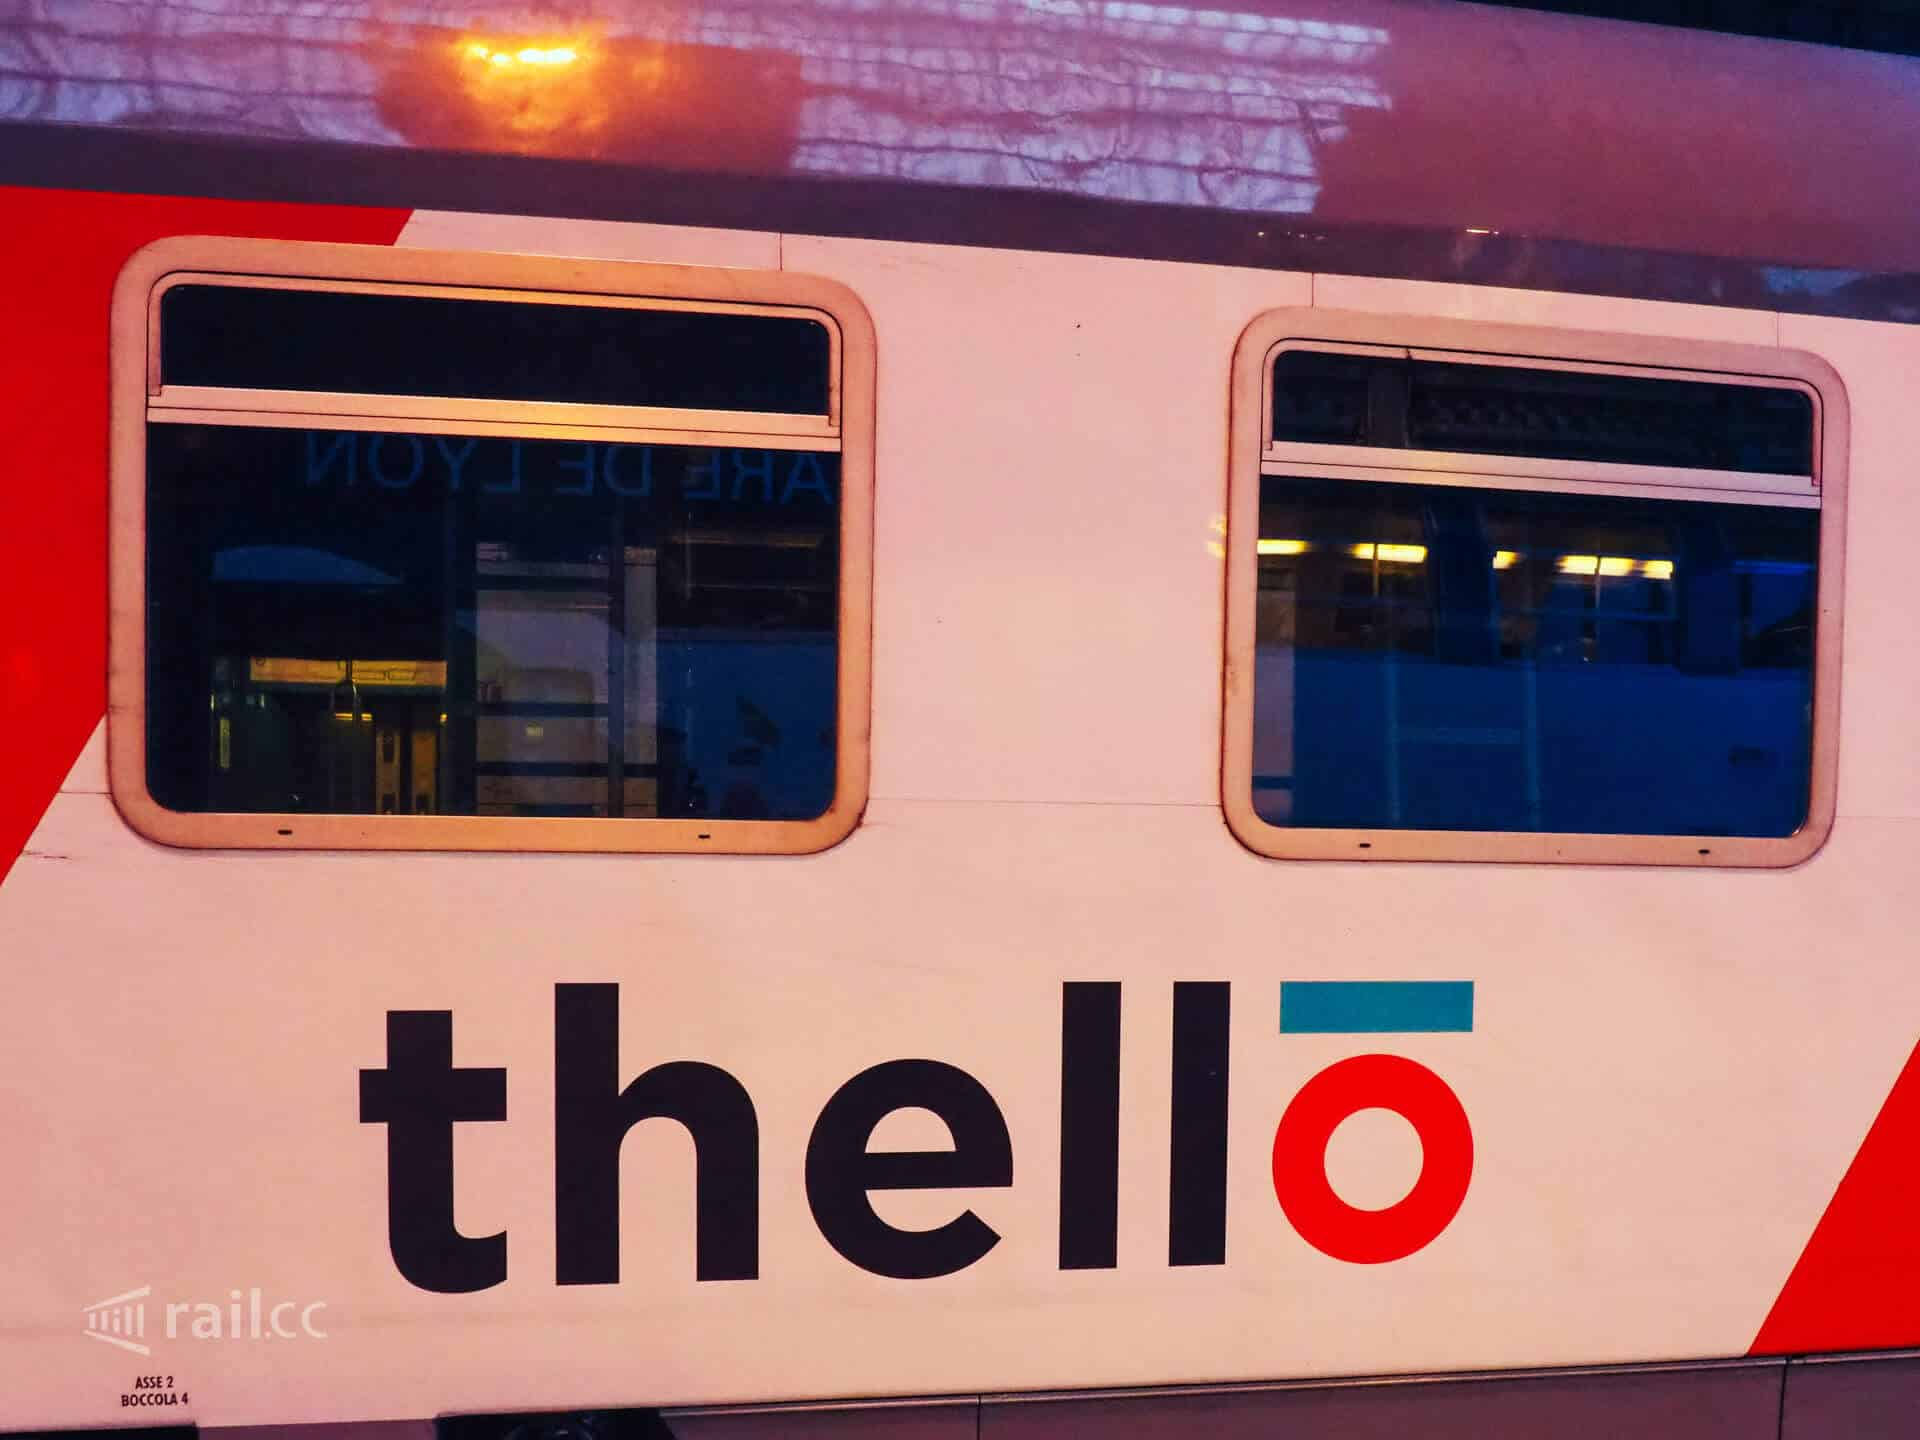 Thello train couchette car.